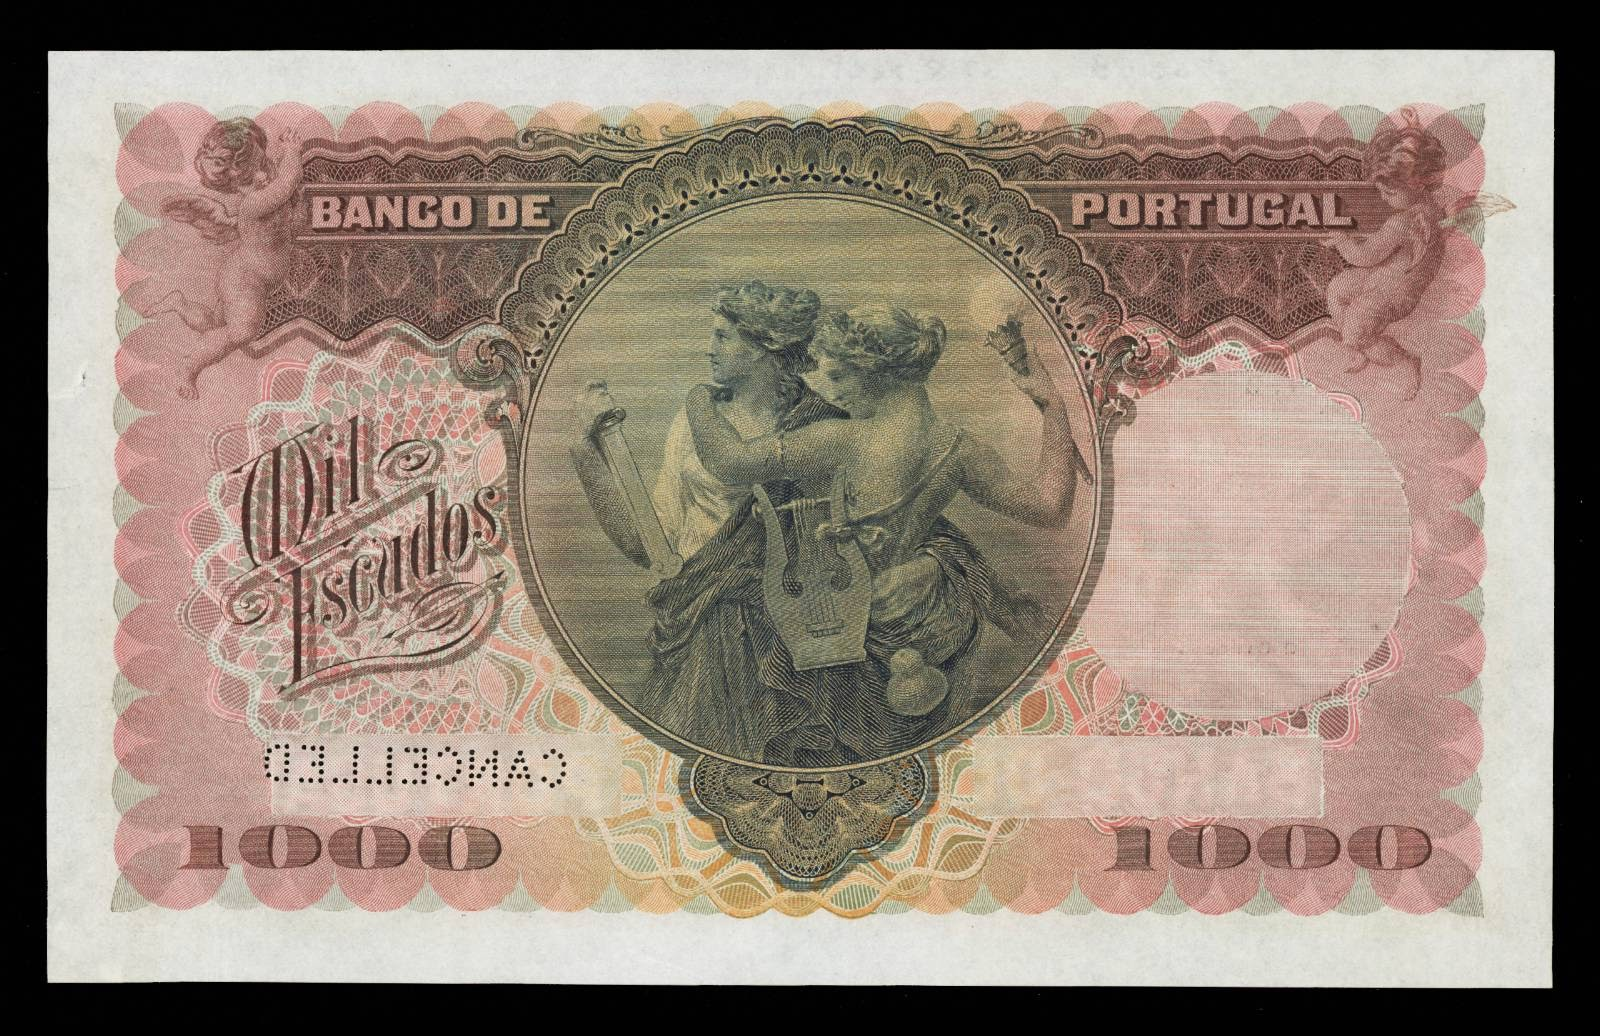 100 Escudos Portugal old bank note